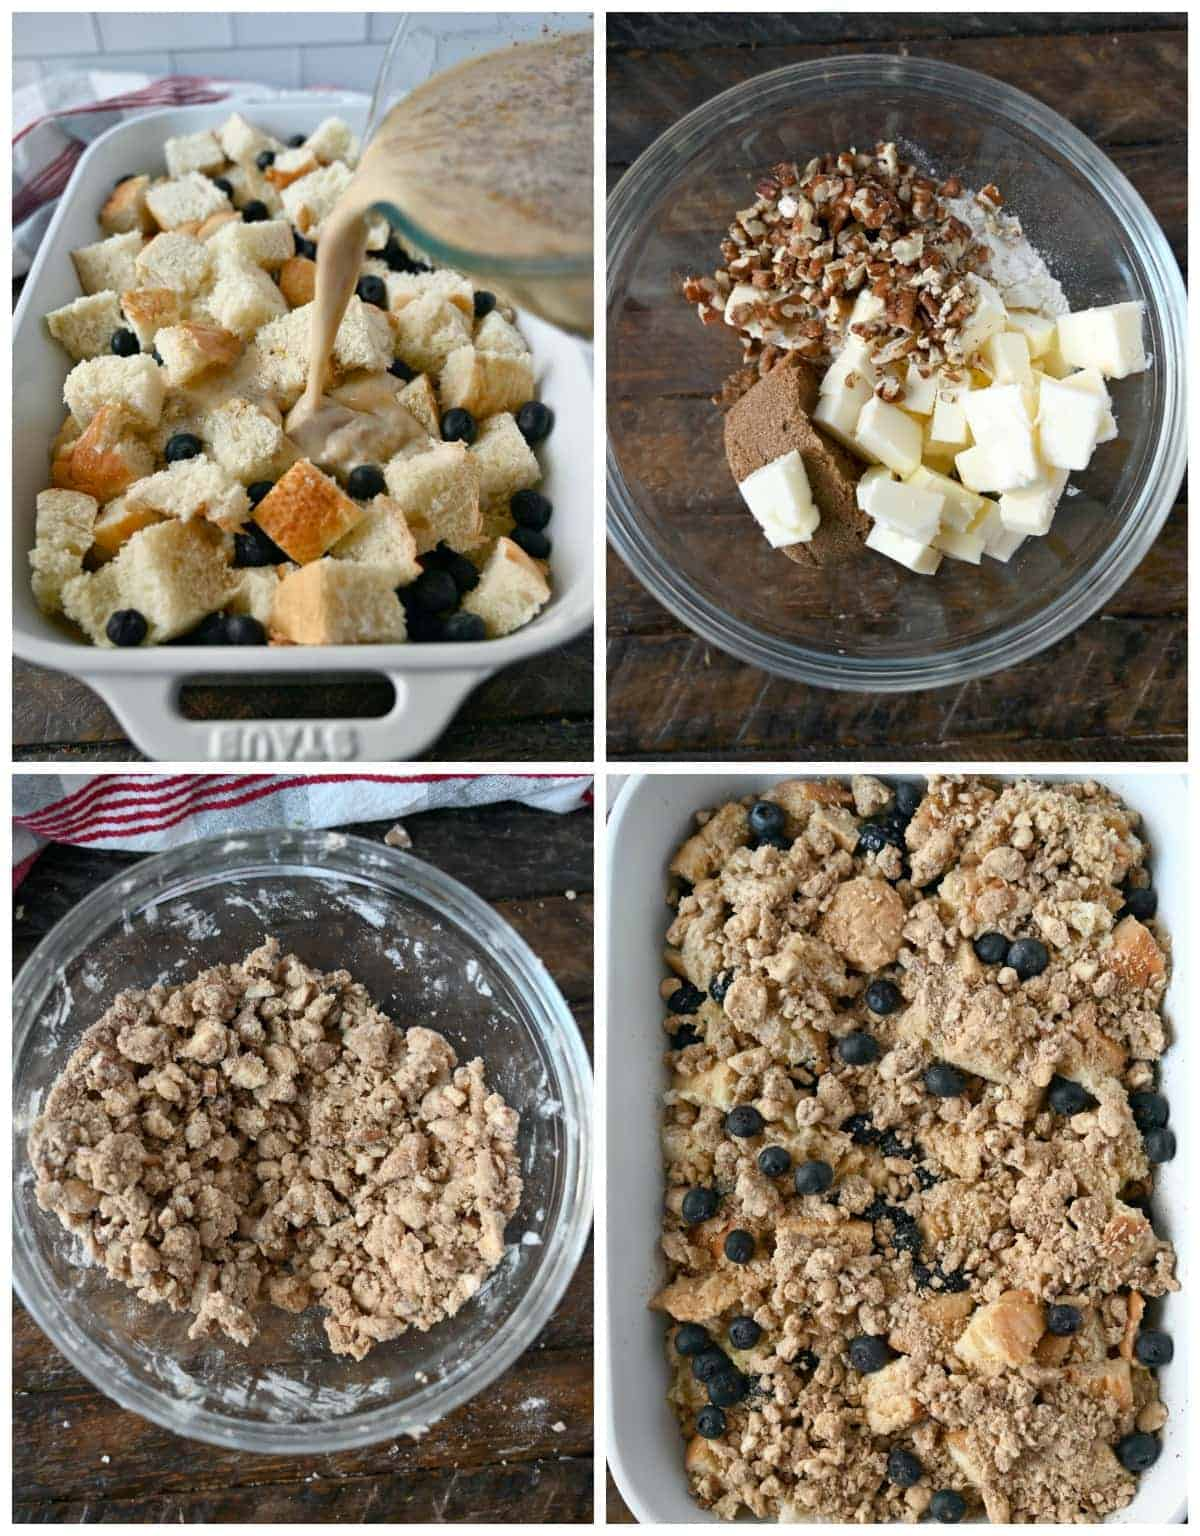 Four process photos. First one, wet ingredients being poured over bread and blueberries. Second one, crumb topping ingredients placed into a small bowl. Third one, crumb topping all mixed up. Fourth one, crumb topping sprinkled over the top.